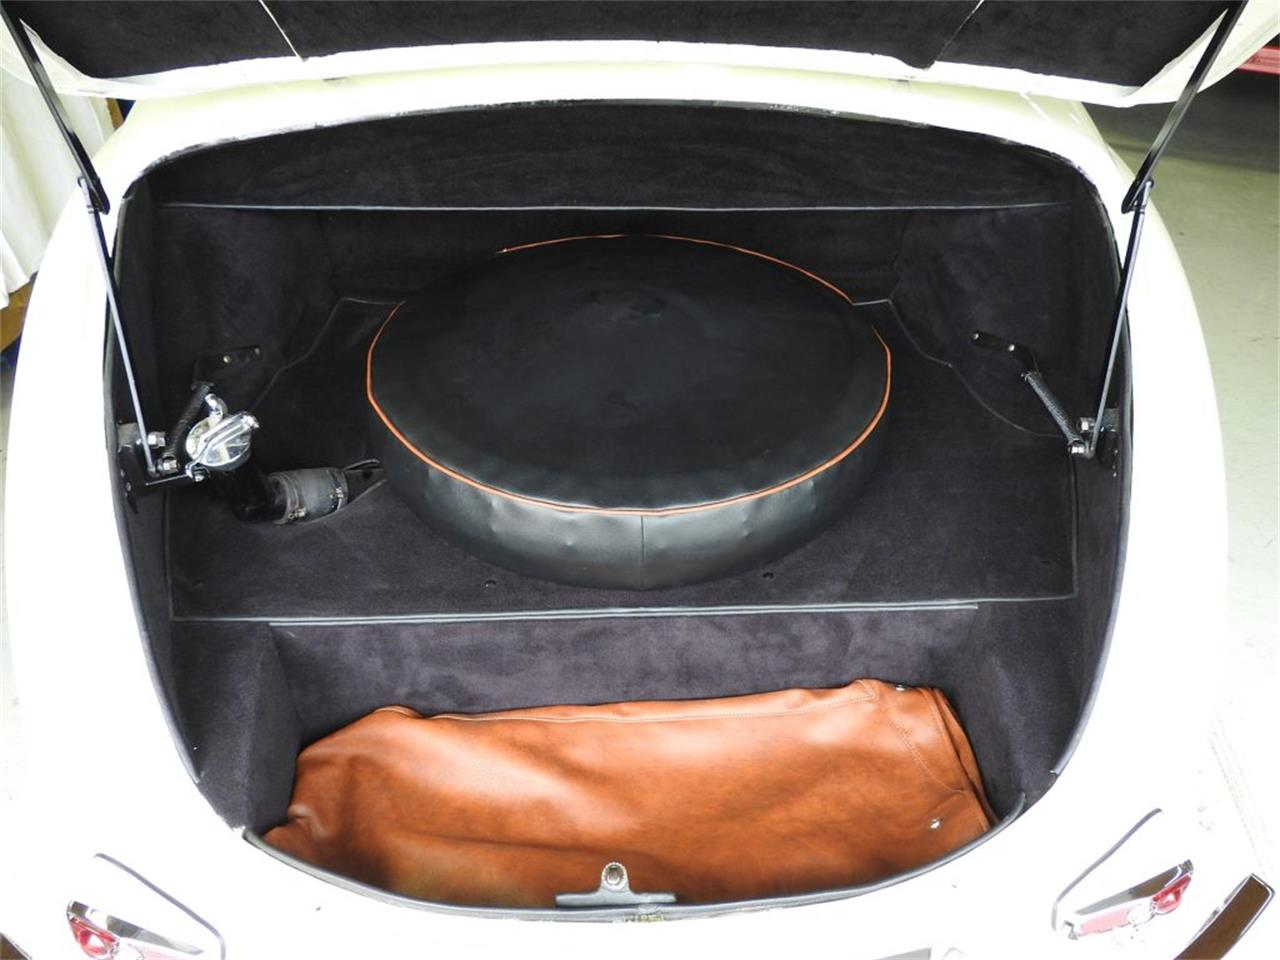 Large Picture of '50 Talbot-Lago Roadster located in Auburn Hills Michigan Auction Vehicle - OCHL